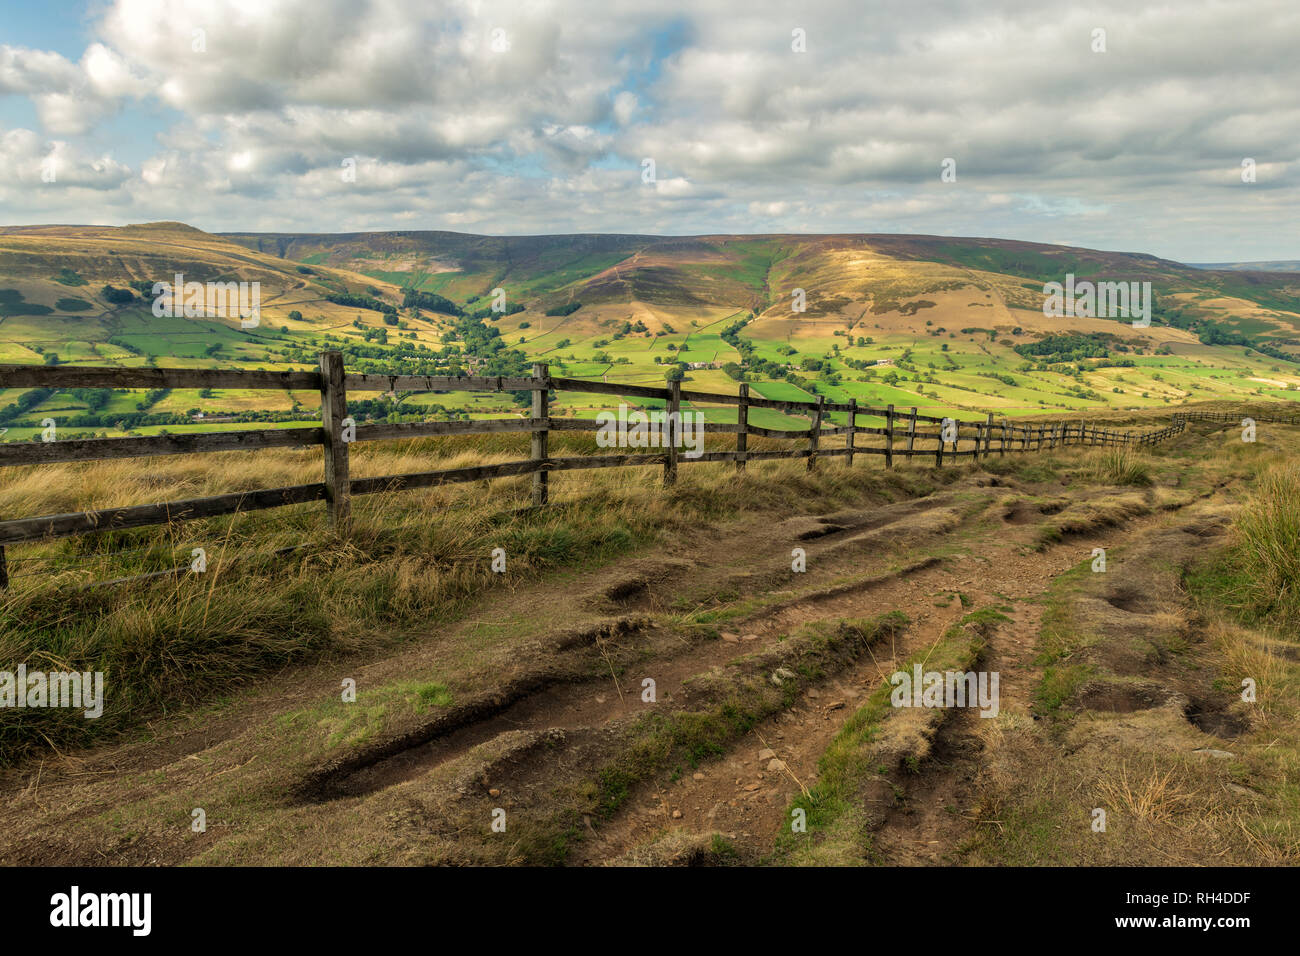 Edale viewed from Mam Tor. To achieve maximum depth of field I focus stacked two images together. - Stock Image